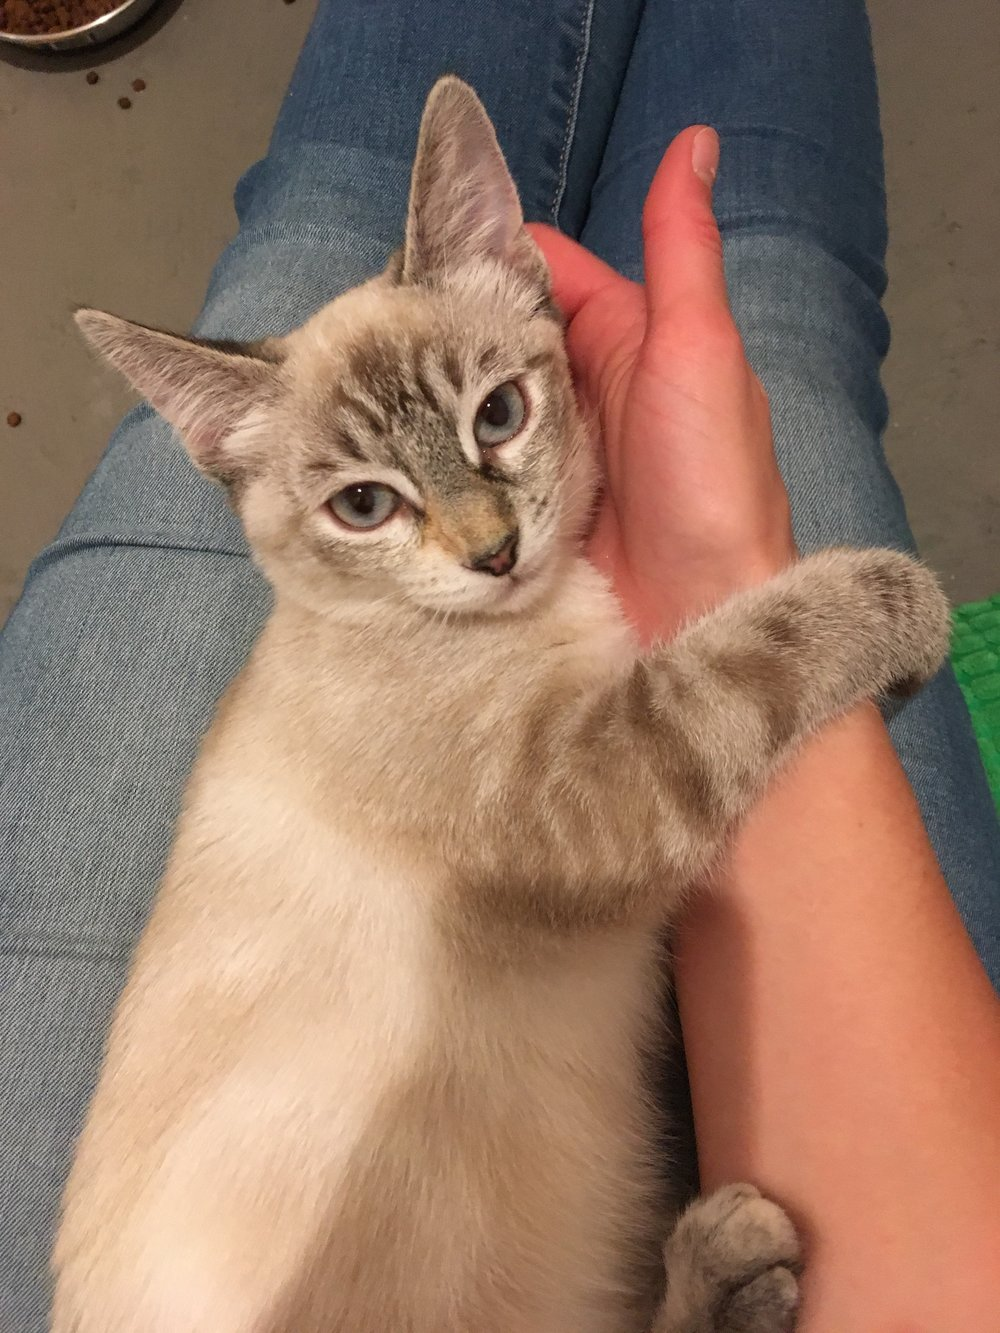 Little blue eyes - Aspen, littermate with Leaf and Oak, is a Lynx Point Siamese cat who loves laps and play time with her sisters. She is 4-months-old.